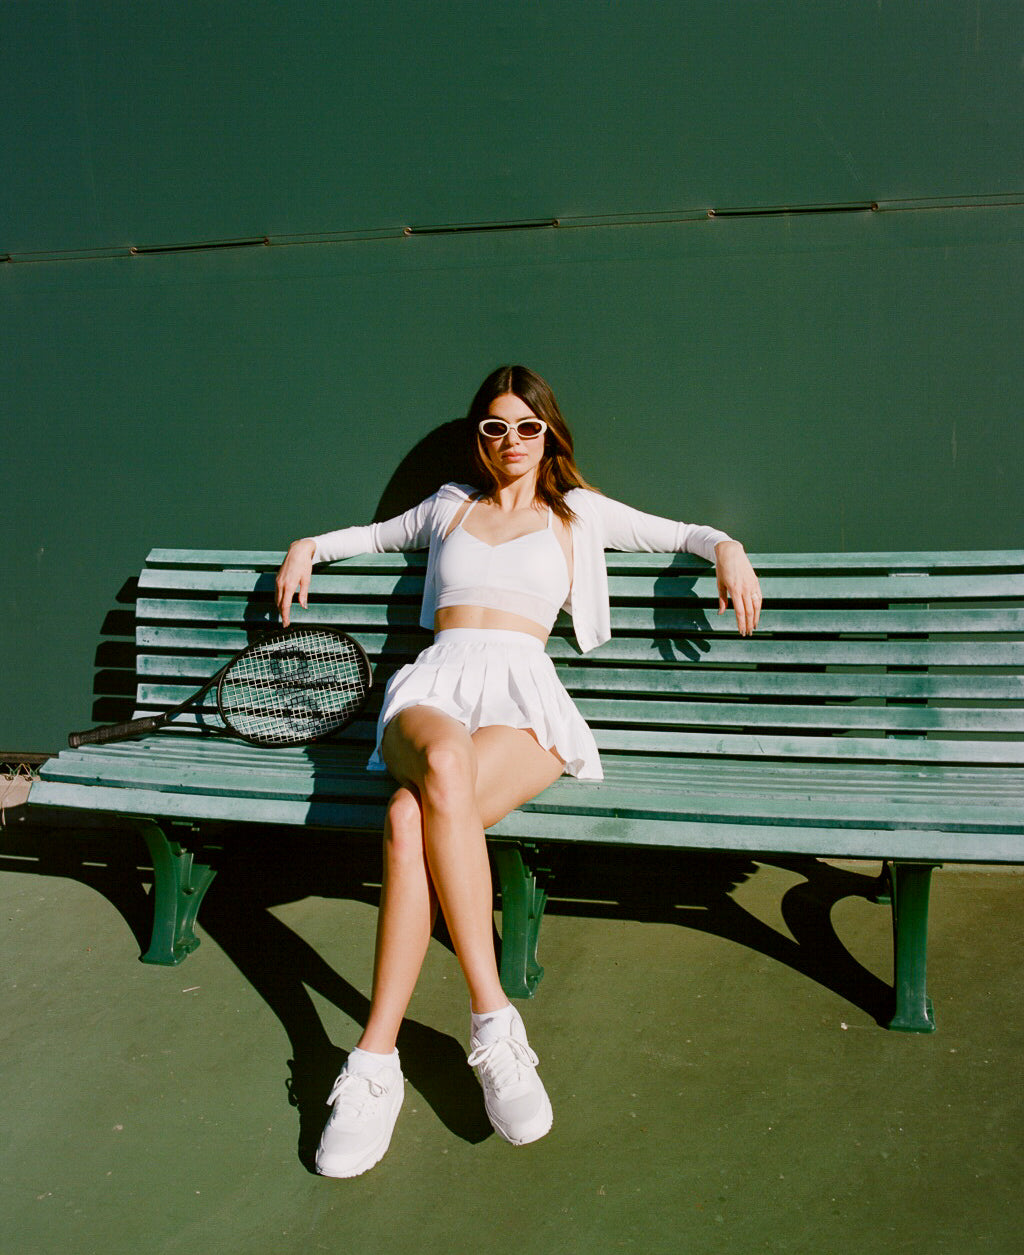 @kendalljenner wearing an all-white tennis skirt outfit with trendy white sunglasses while sitting on the sidelines of a tennis court.